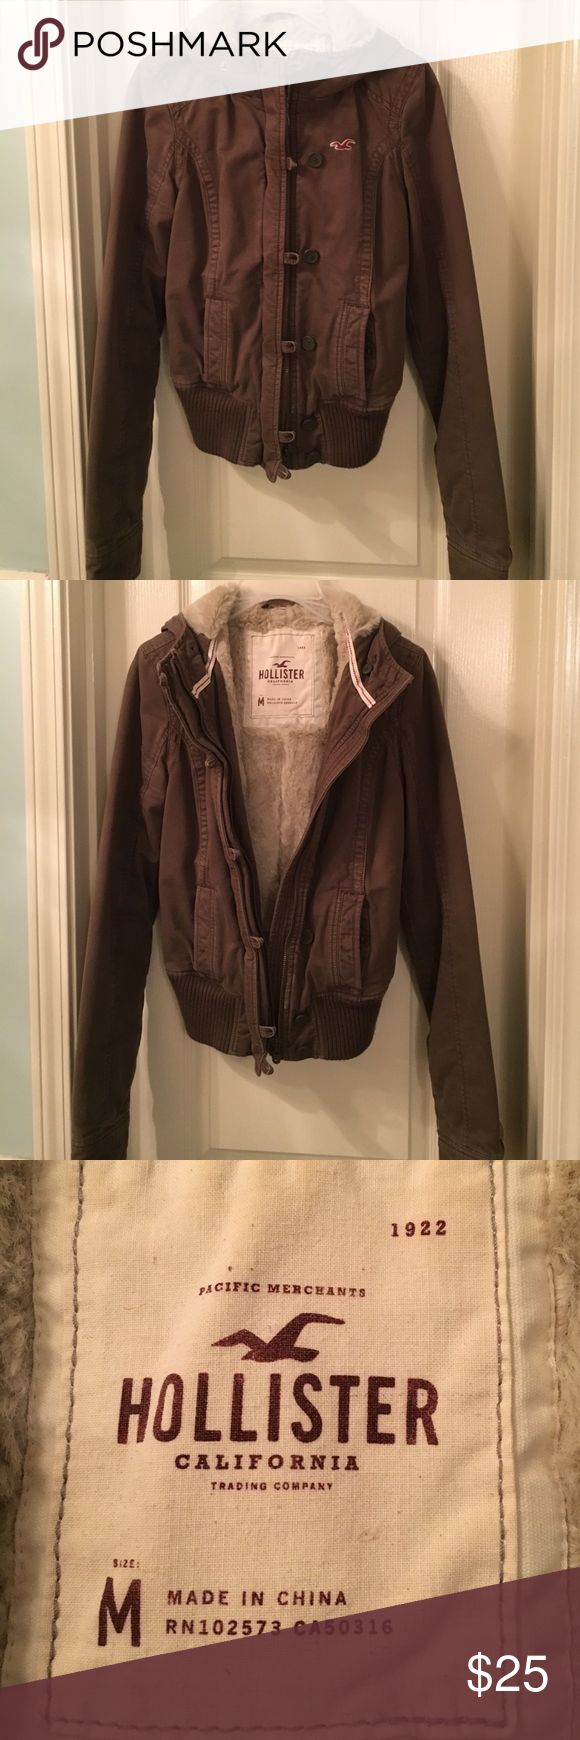 Hollister Brown Bomber Jacket Size M Hollister Brown Bomber Jacket Size M. Excellent used condition. Hollister jackets run small so this fits more like a small. Zipper works great and no stains or tears. All of the listings in my closet are from a smoke free home. I accept reasonable offers and offer a discount on bundles. Thank you for shopping my closet ❤ Hollister Jackets & Coats